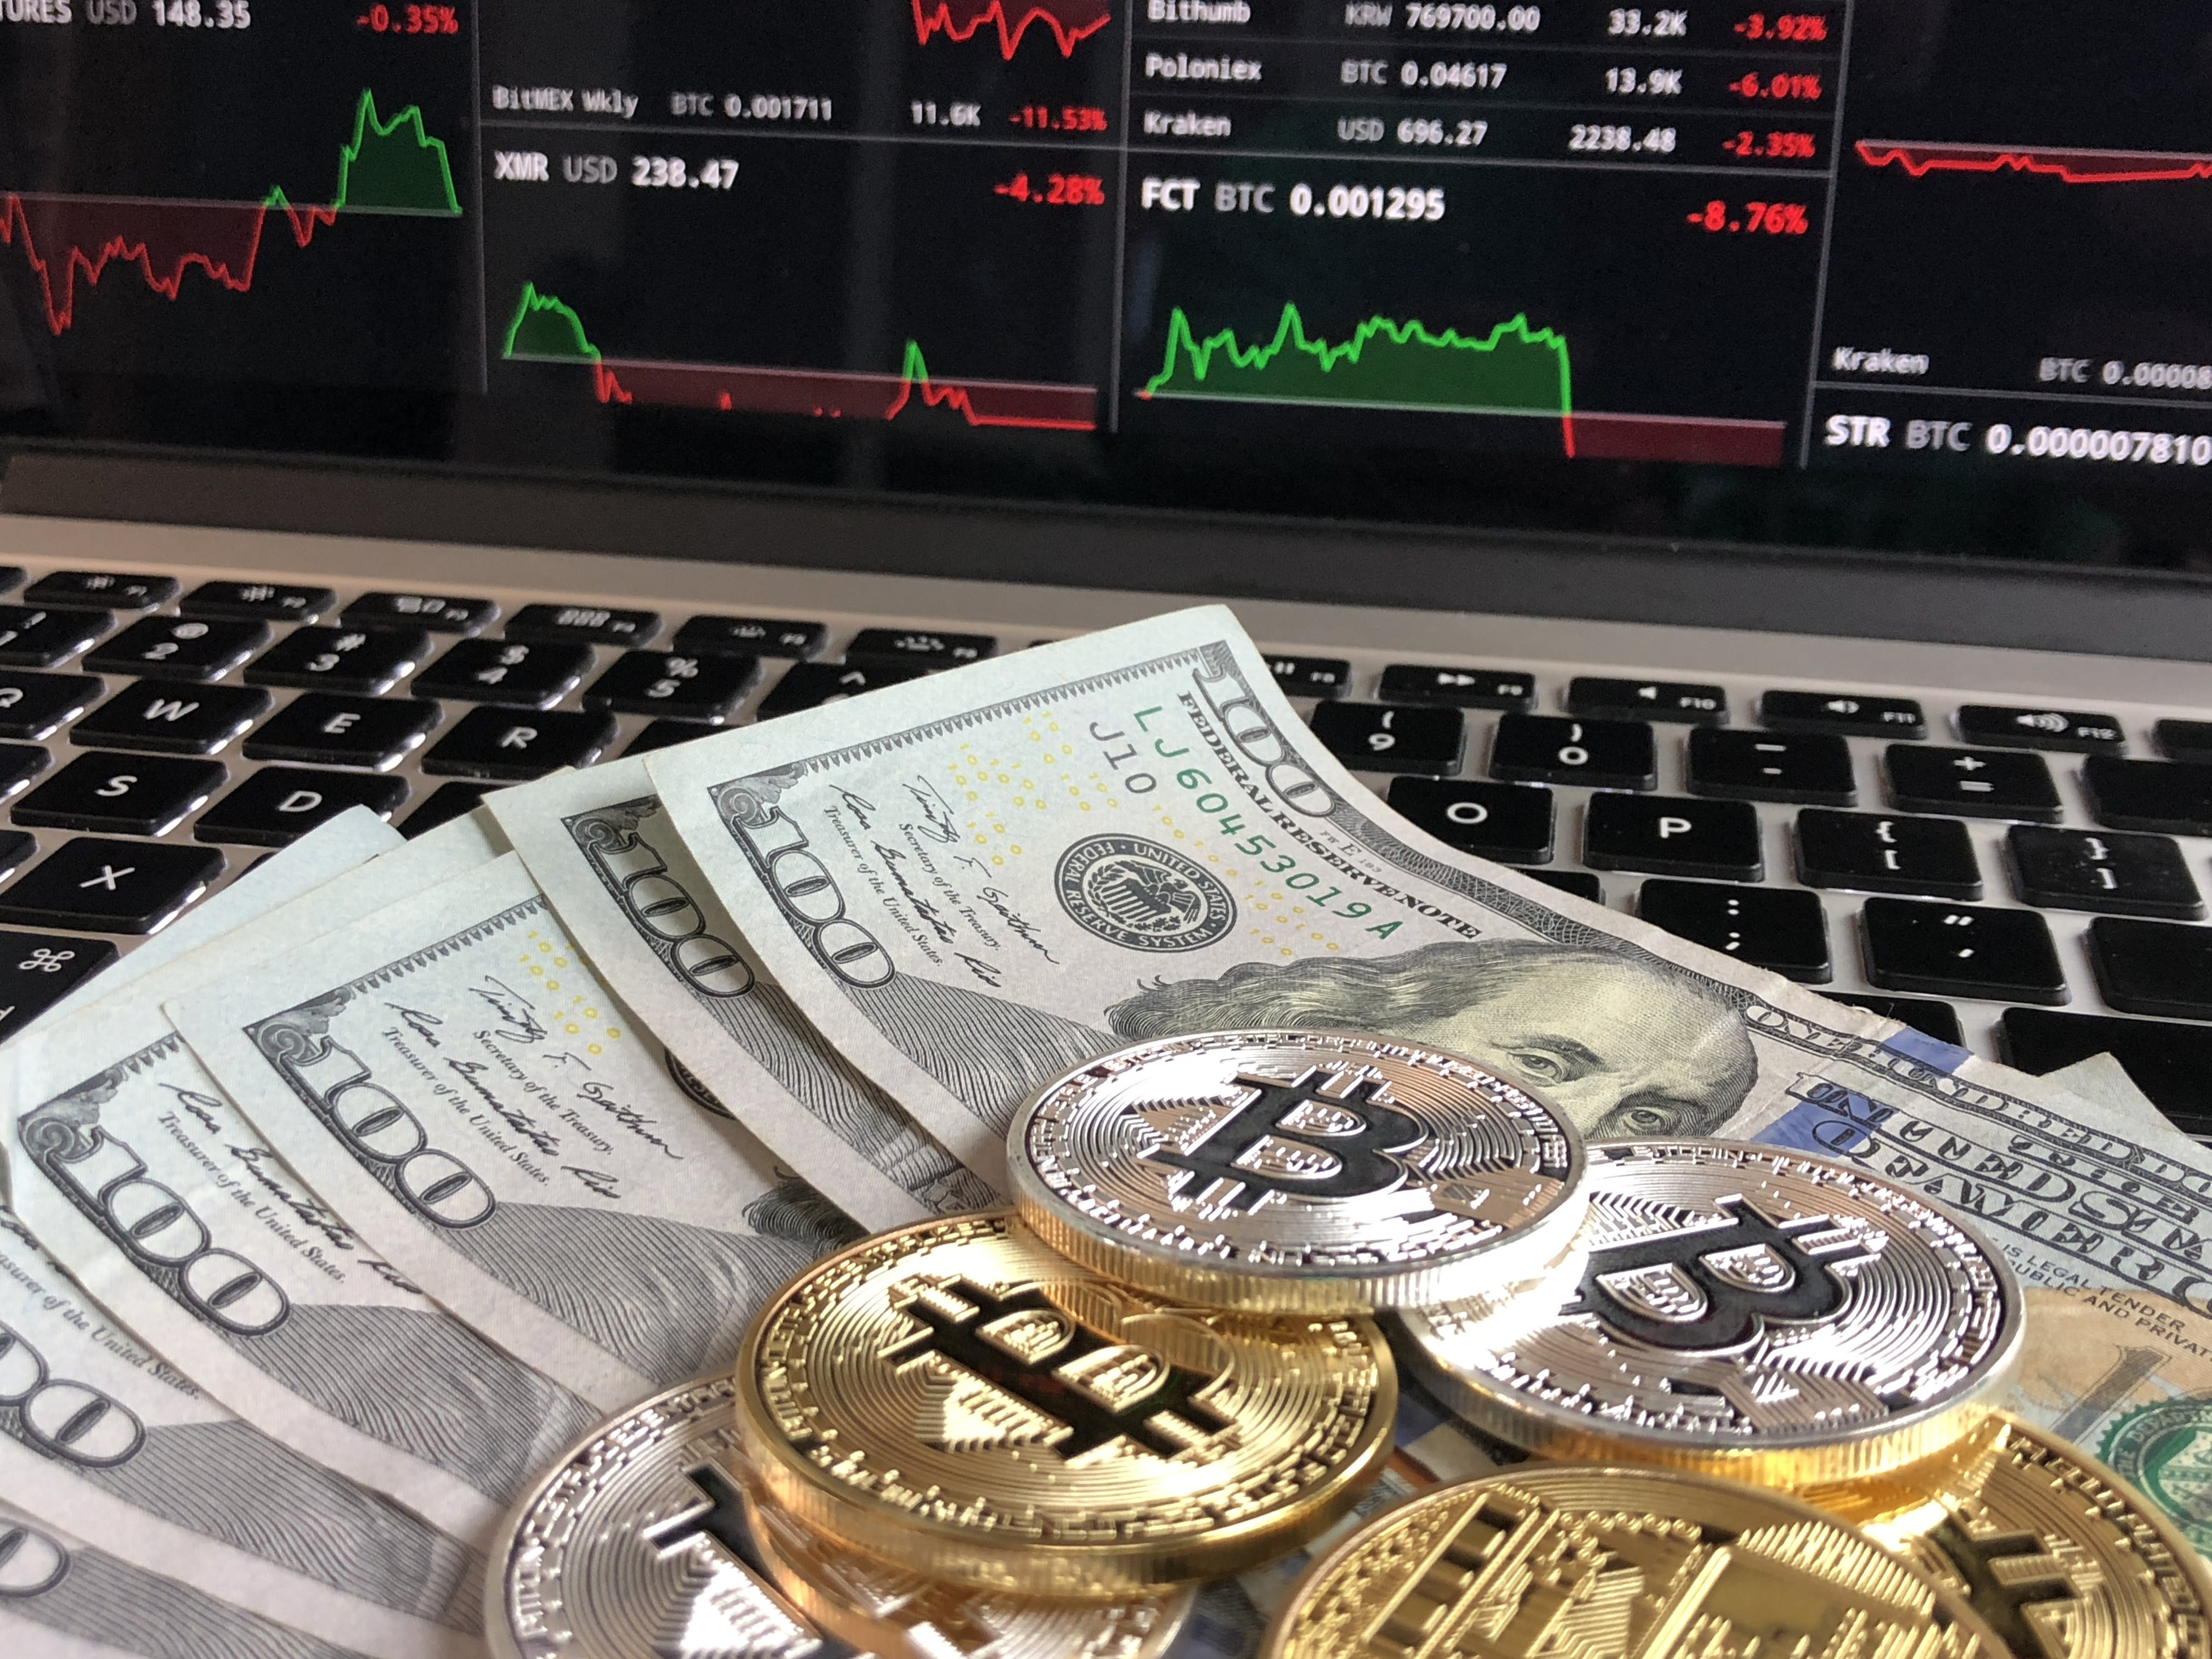 Free stock photo of money, graph, cryptocurrency, Bitcoins and cash